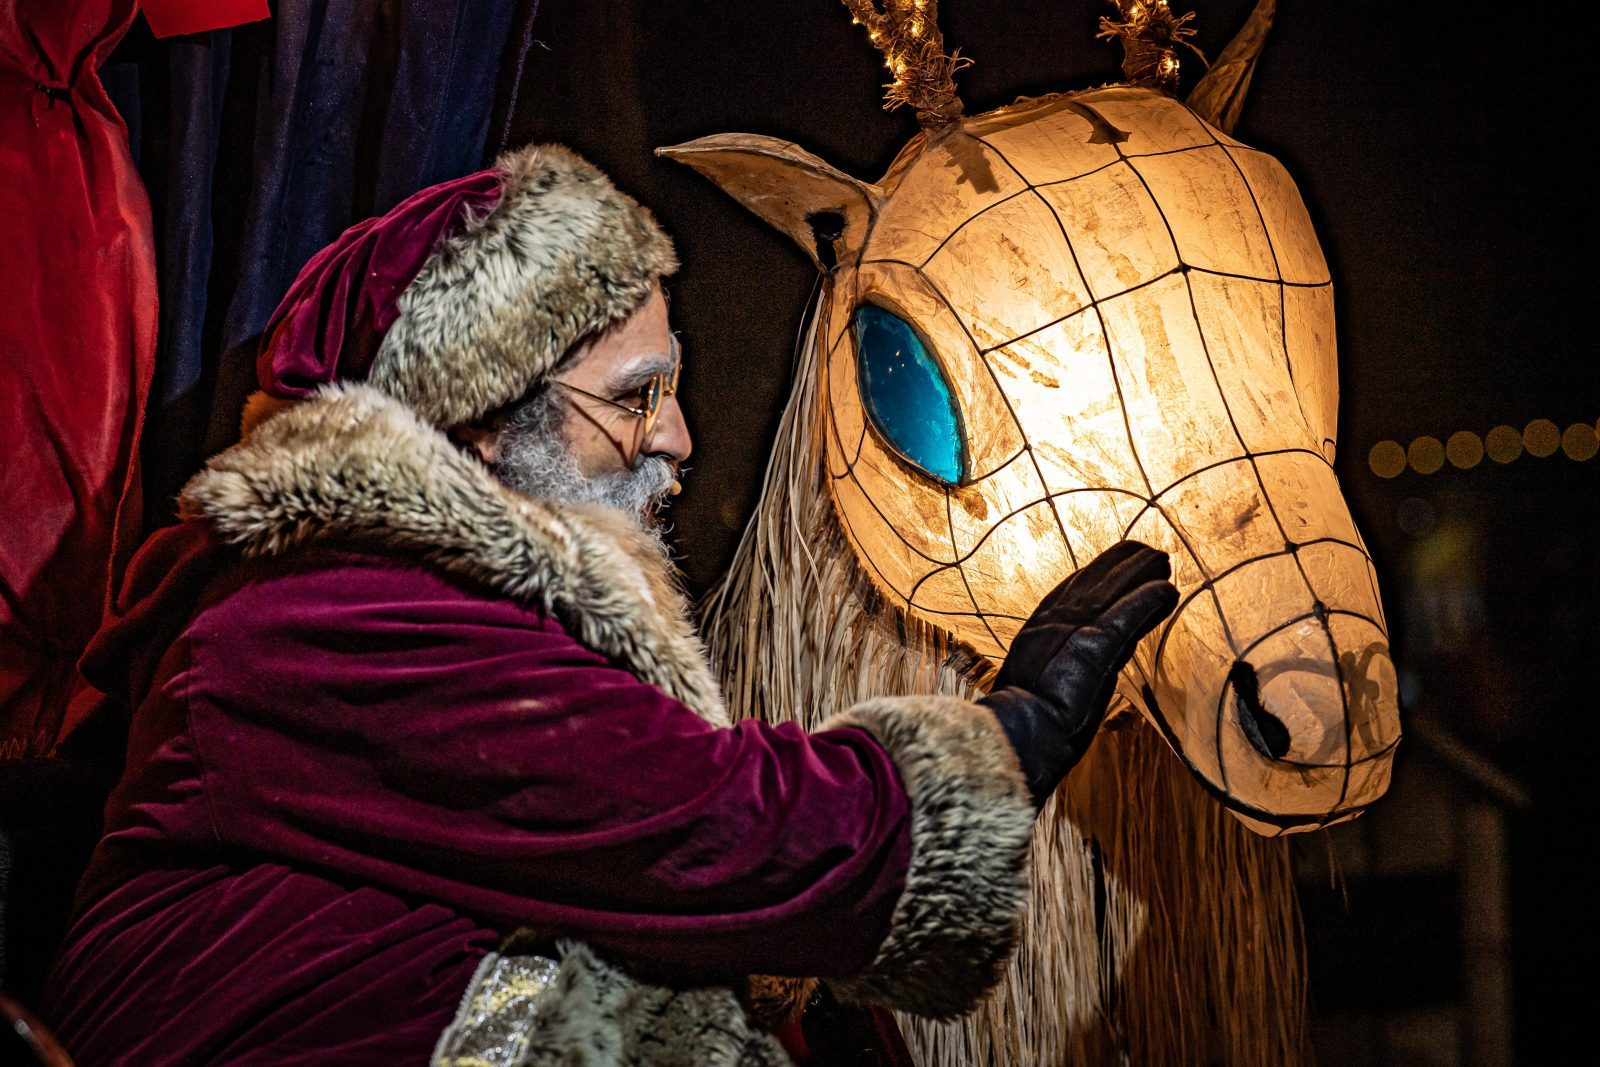 Beloved magical event 'The Lanturns' returns to Chester Zoo this Christmas, The Manc